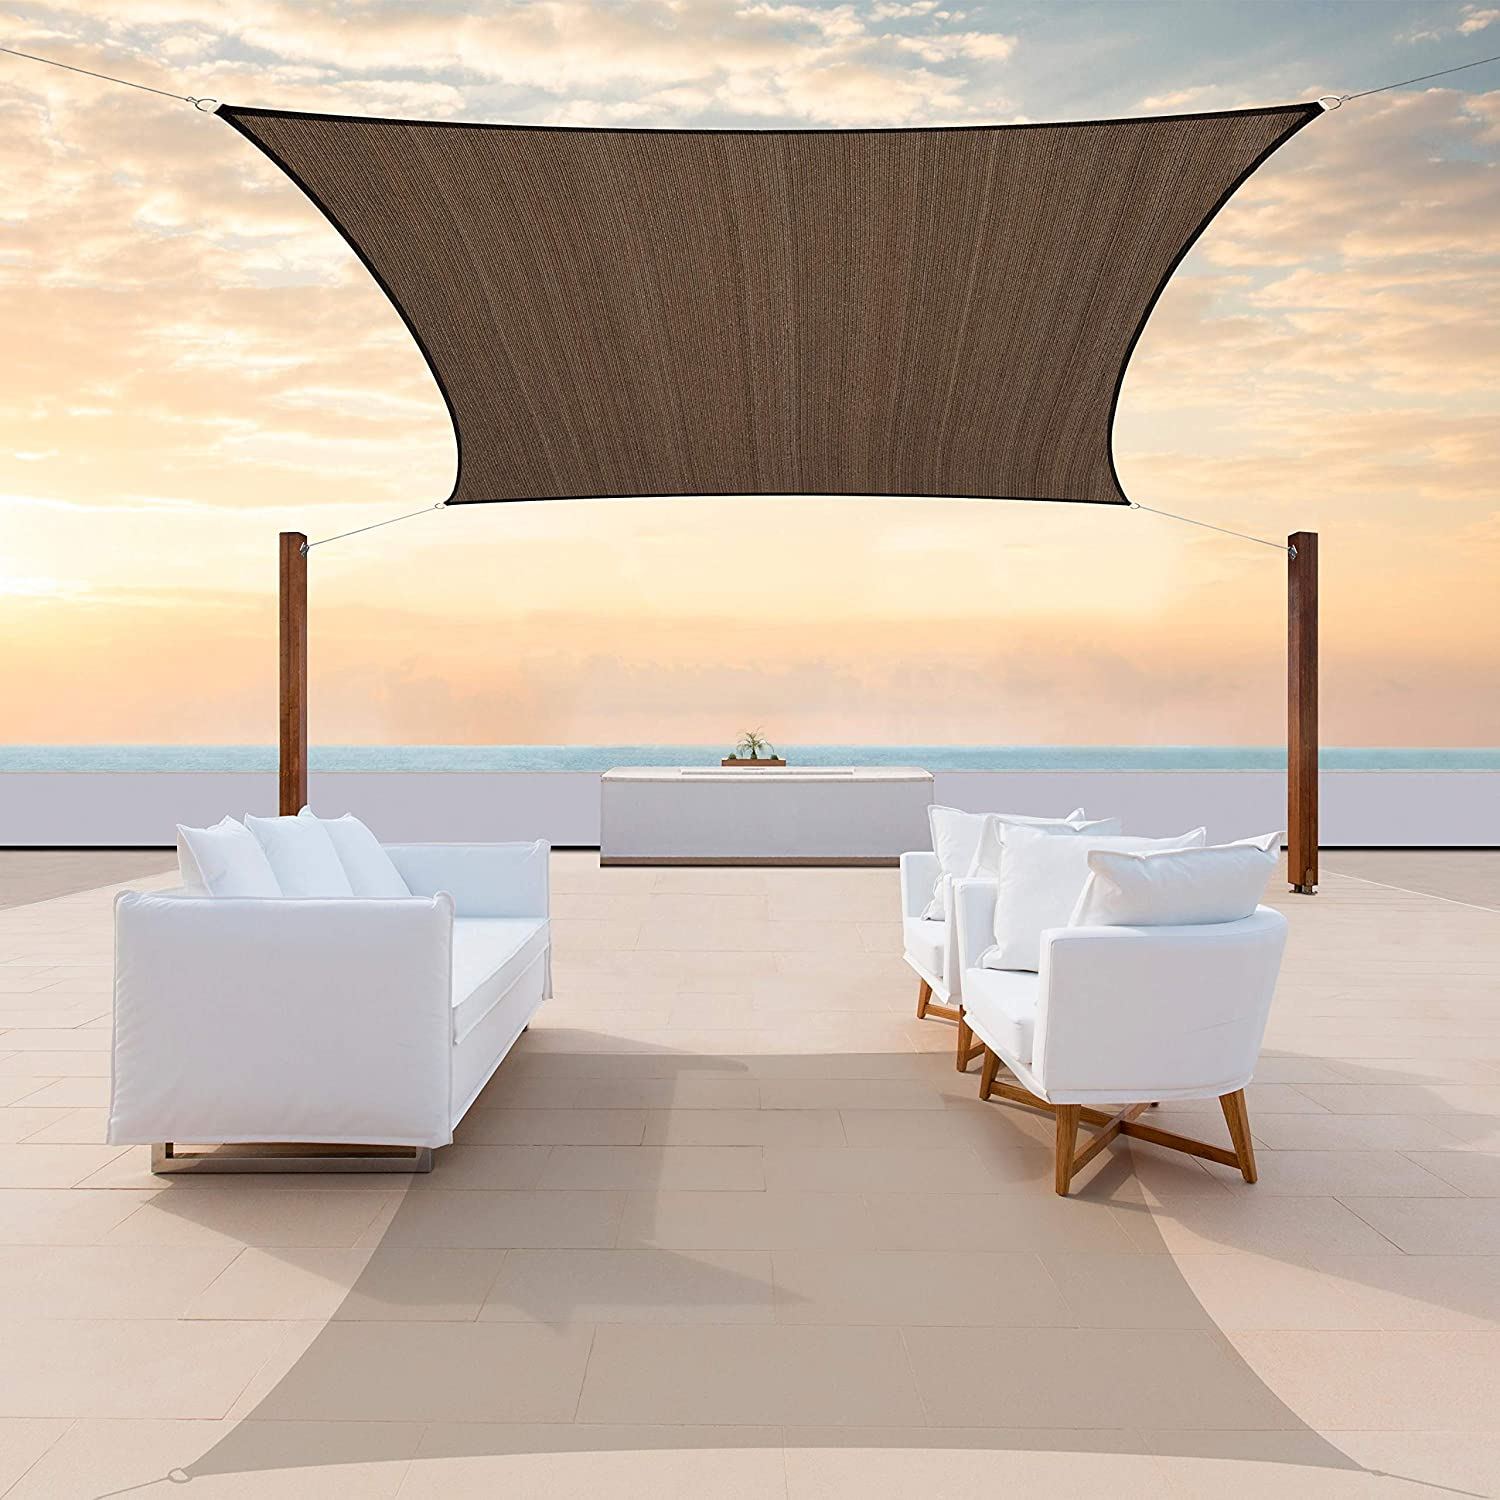 ColourTree 8' x 10' Brown Sail Rectangle National products Sacramento Mall CTAPRN8-190GS Sun Shade